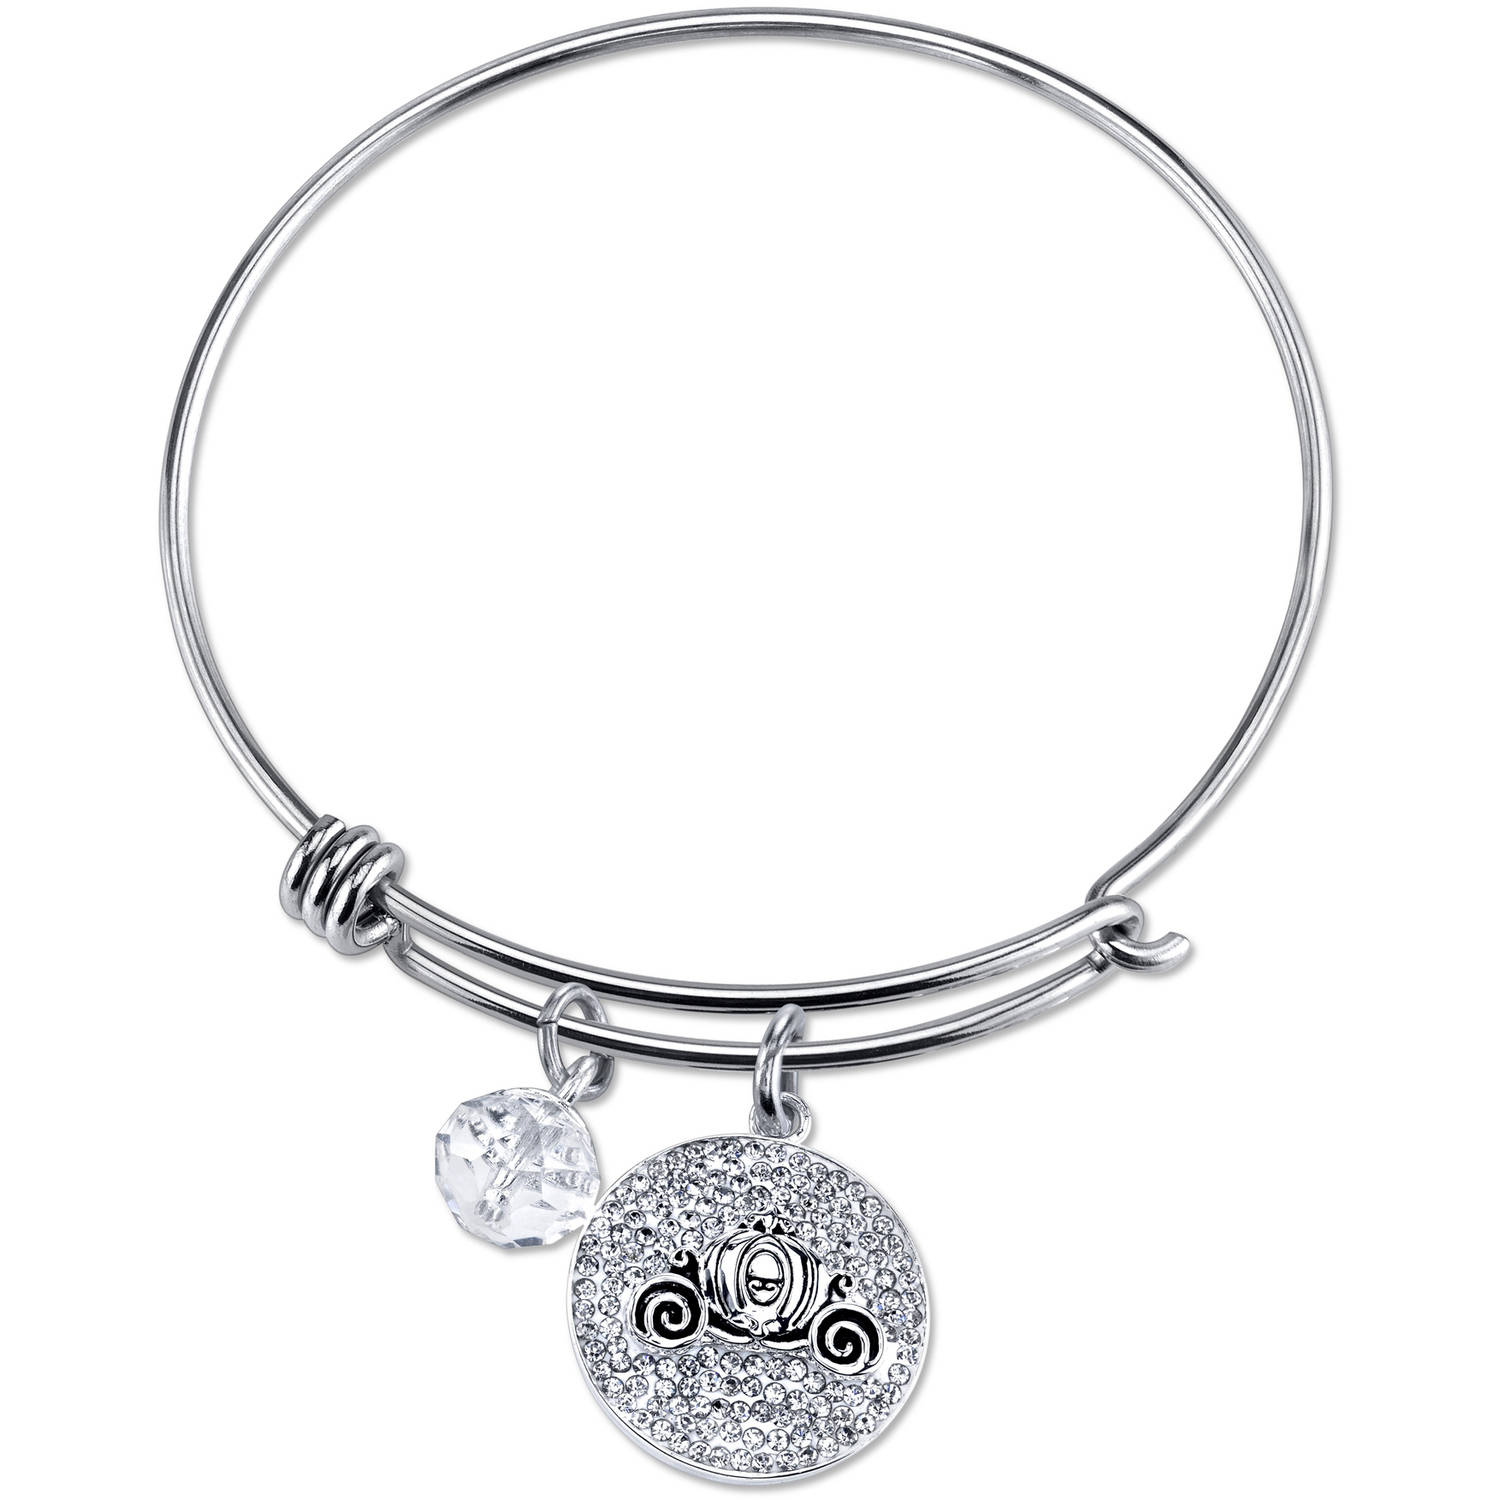 Women's Stainless Steel Dream Big Crystal Cinderella Carriage with 8mm Clear Bead Bangle Bracelet